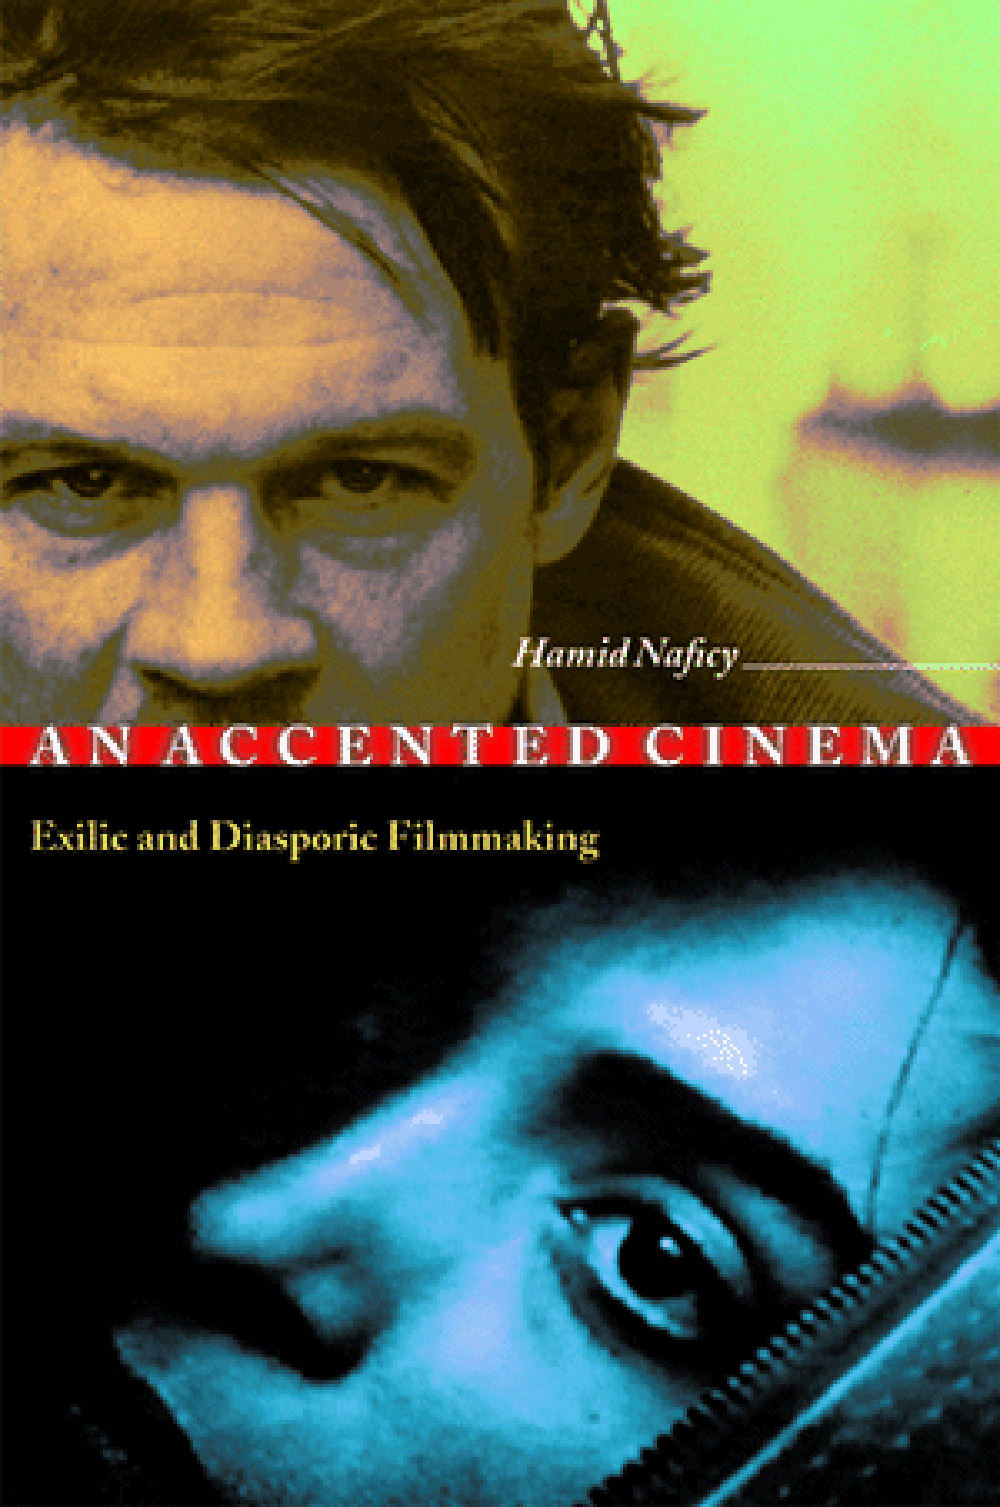 Fig 3. Hamid Naficy: An Accented Cinema: Exilic and Diasporic Filmmaking, Princeton University Press, 2001.